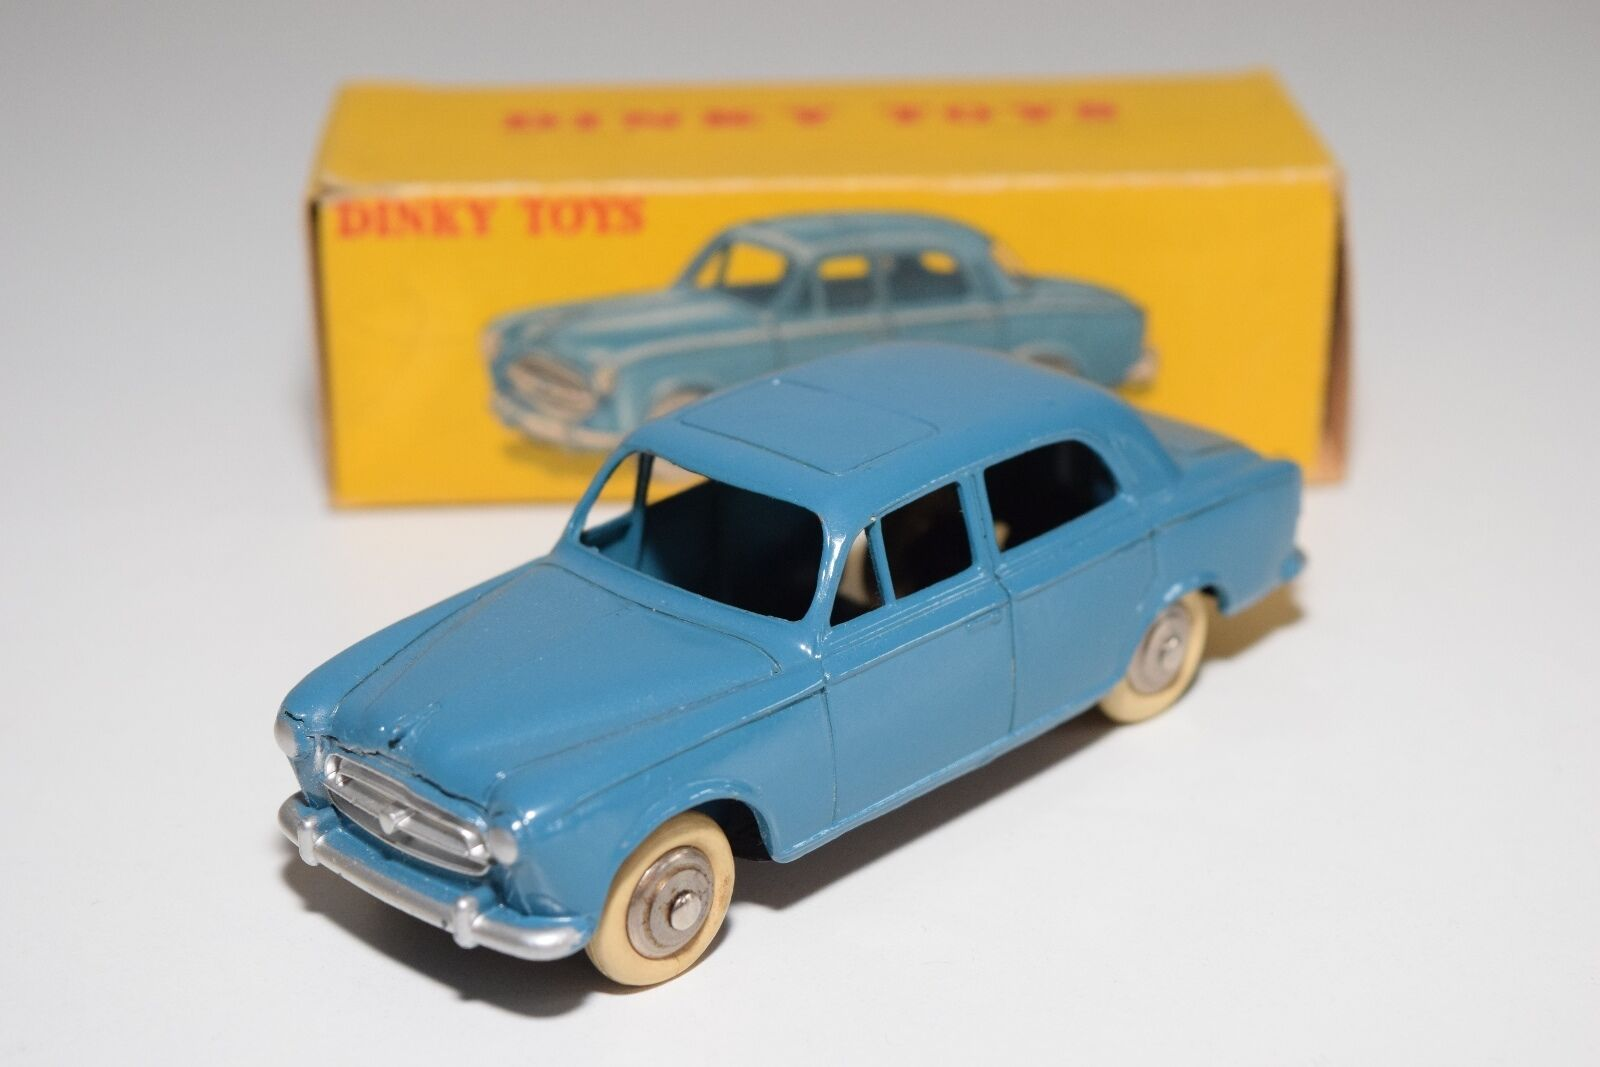 \\ DINKY TOYS 24B 24 B PEUGEOT 403 BERLINE Blau VERY NEAR MINT BOXED